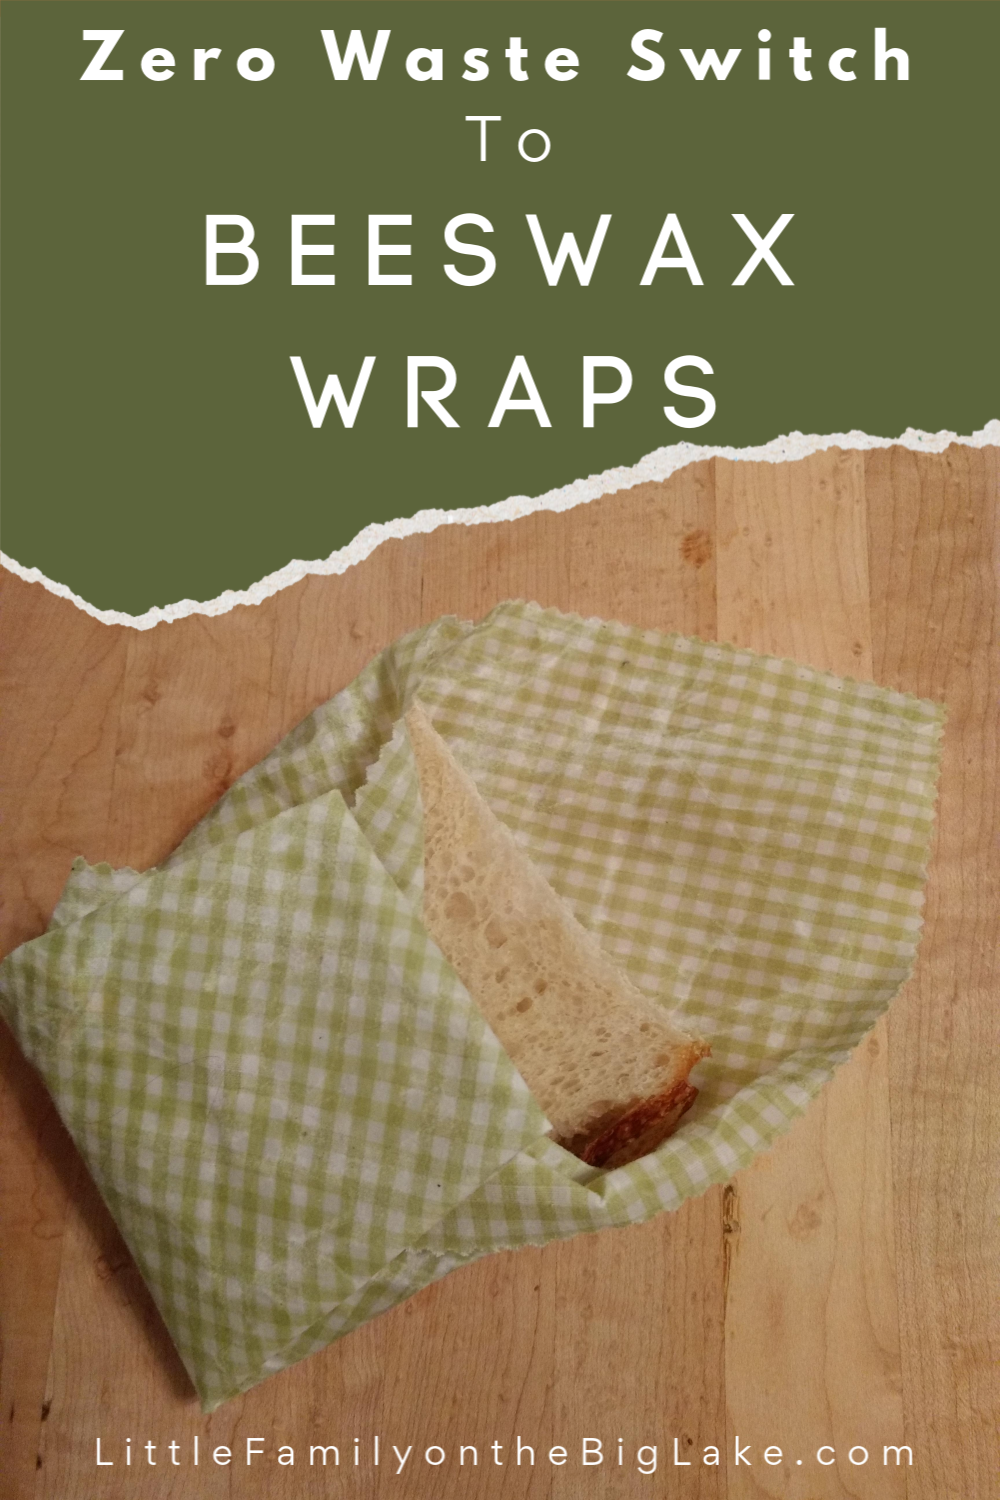 Ditch the plastic wrap and try these Beeswax wraps instead. They are easy to make at home, give these a try! #beeswaxwraps